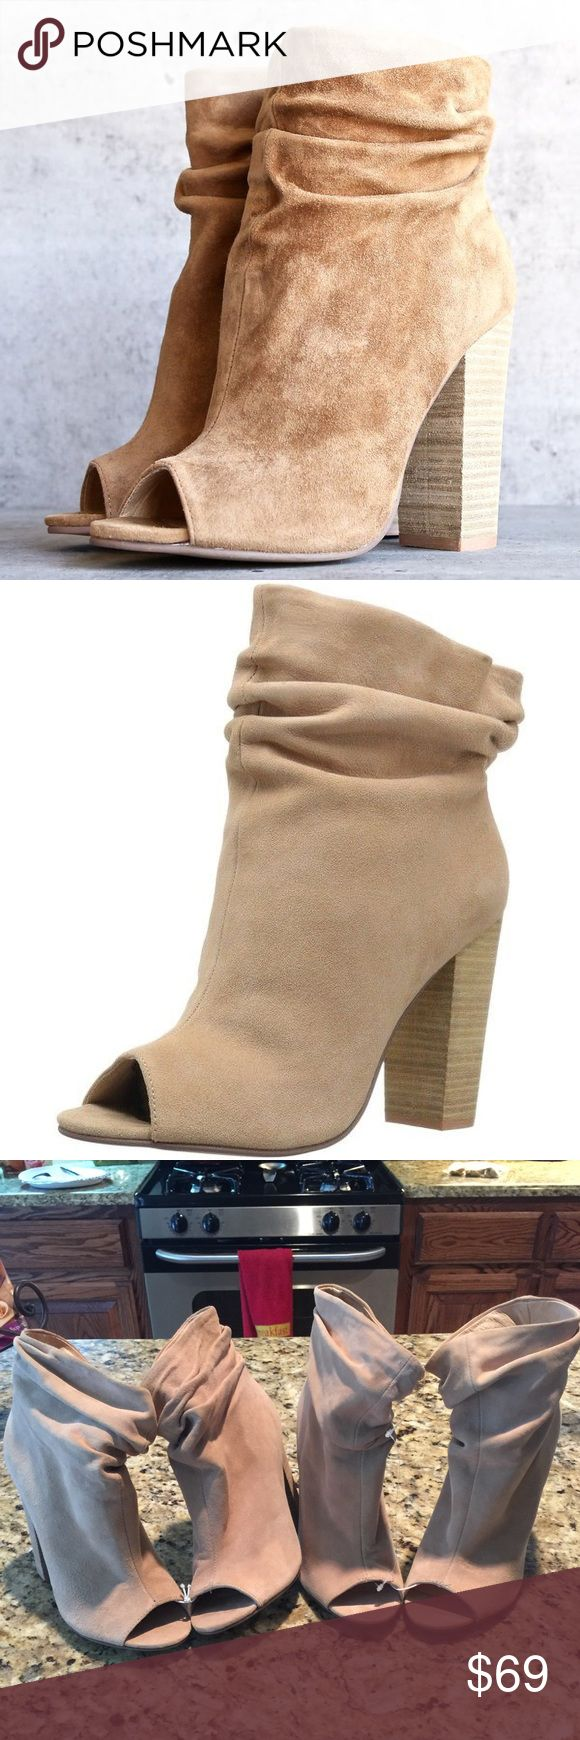 Chinese Laundry Kristin Cavallari Laurel Bootie Chinese Laundry Kristin Cavallari - Laurel Open Toe Slouchy Bootie - Kid Suede Dark Camel Wake up your wardrobe with these high-style Break Up booties with slouchy ankle detail and a flirty peep-toe. Rich suede upper with open toe and ruched collar. Man-made lining. Lightly cushioned man-made footbed. Stacked heel. Man-made sole. Imported. Measurements: * Heel Height: 3 3⁄4 in * Weight: 11 oz * Circumference: 11 3⁄4 in * Shaft: 6 3⁄4 in…